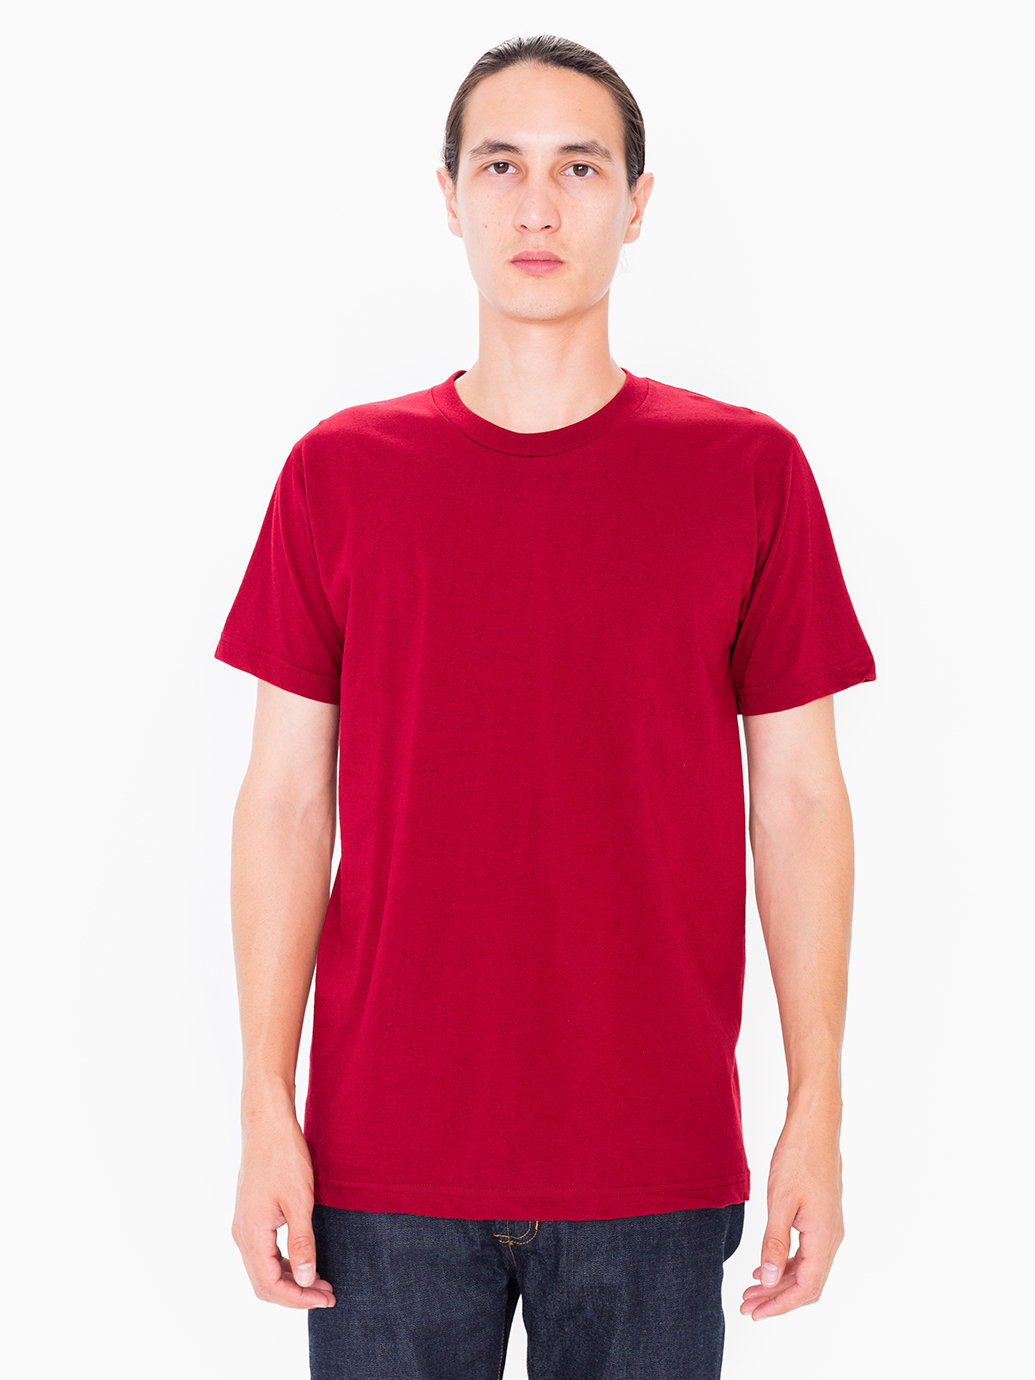 American Apparel Fine Jersey Crewneck T Shirt In Red For